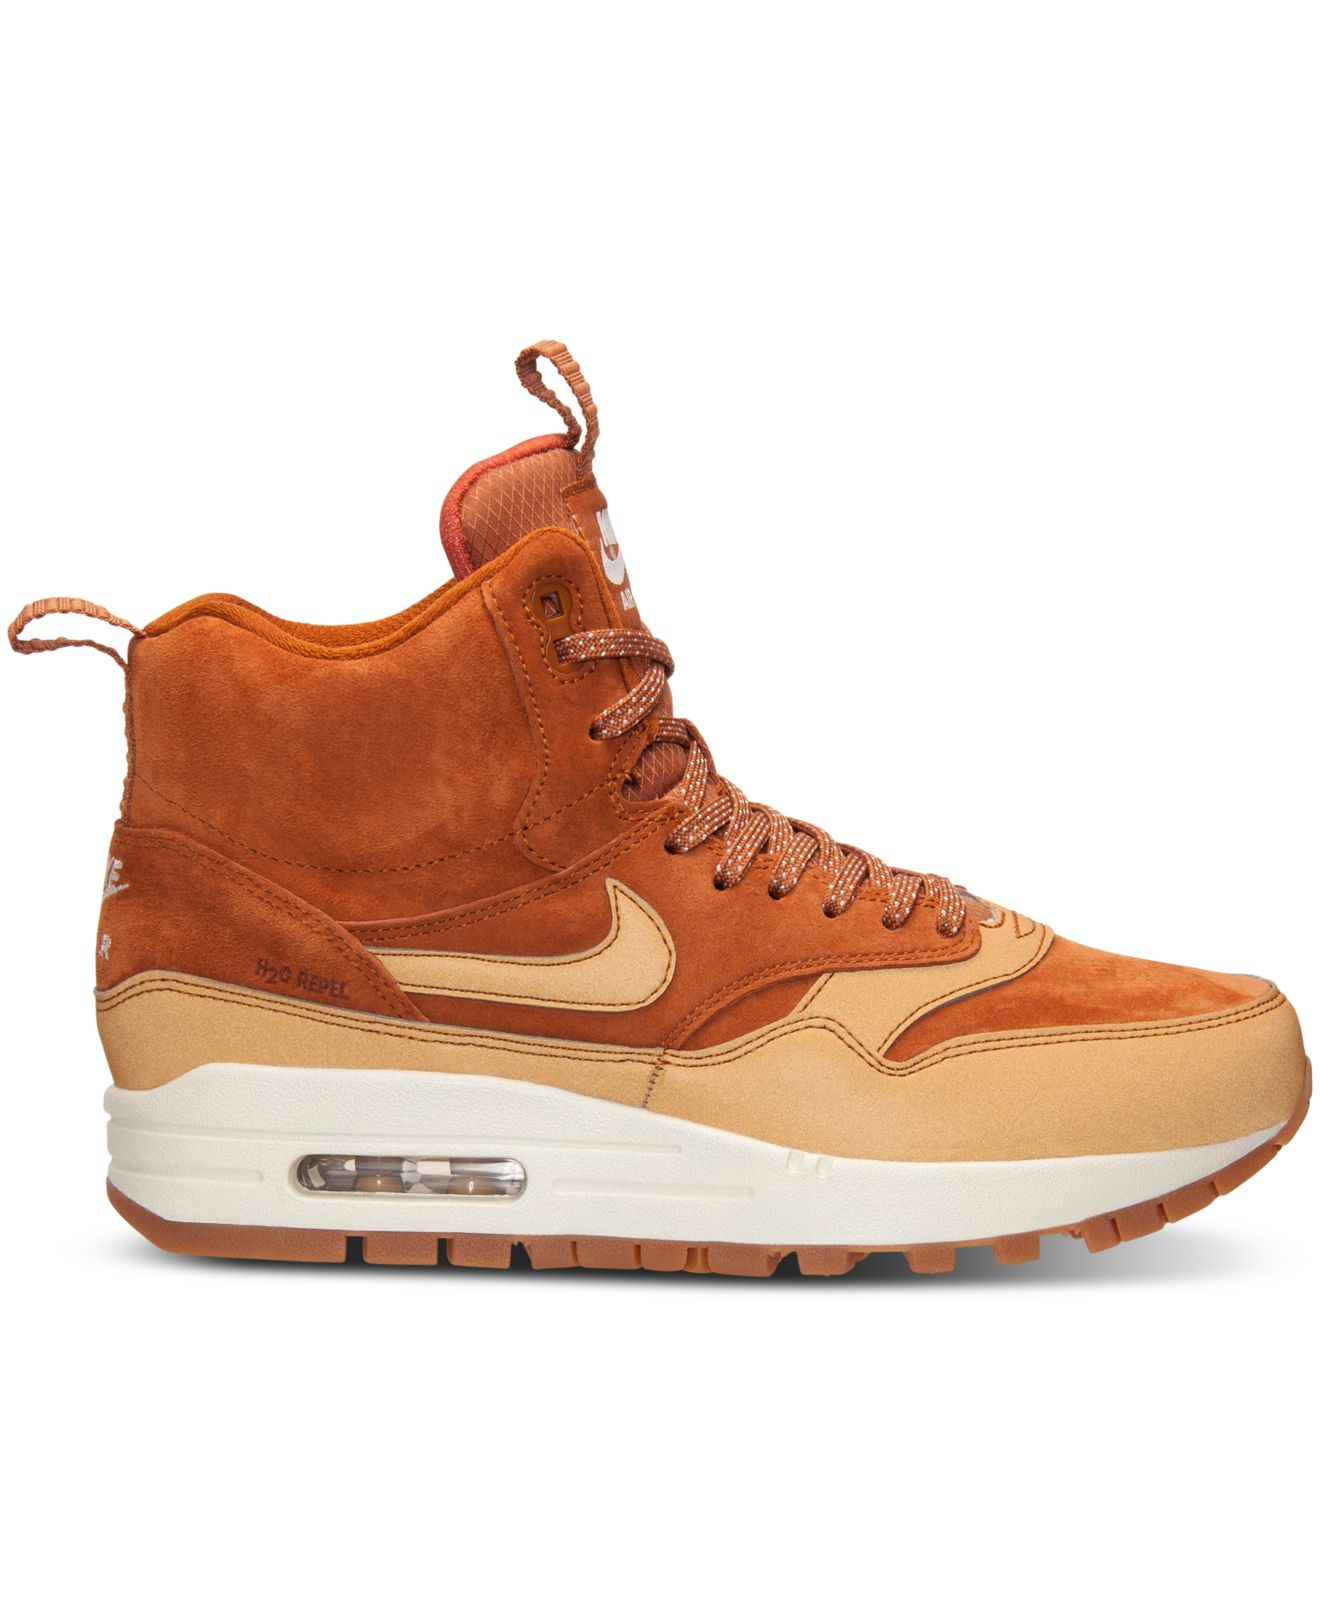 Lyst - Nike Women s Air Max 1 Mid Sneakerboot From Finish Line in ... d8f8a0c658